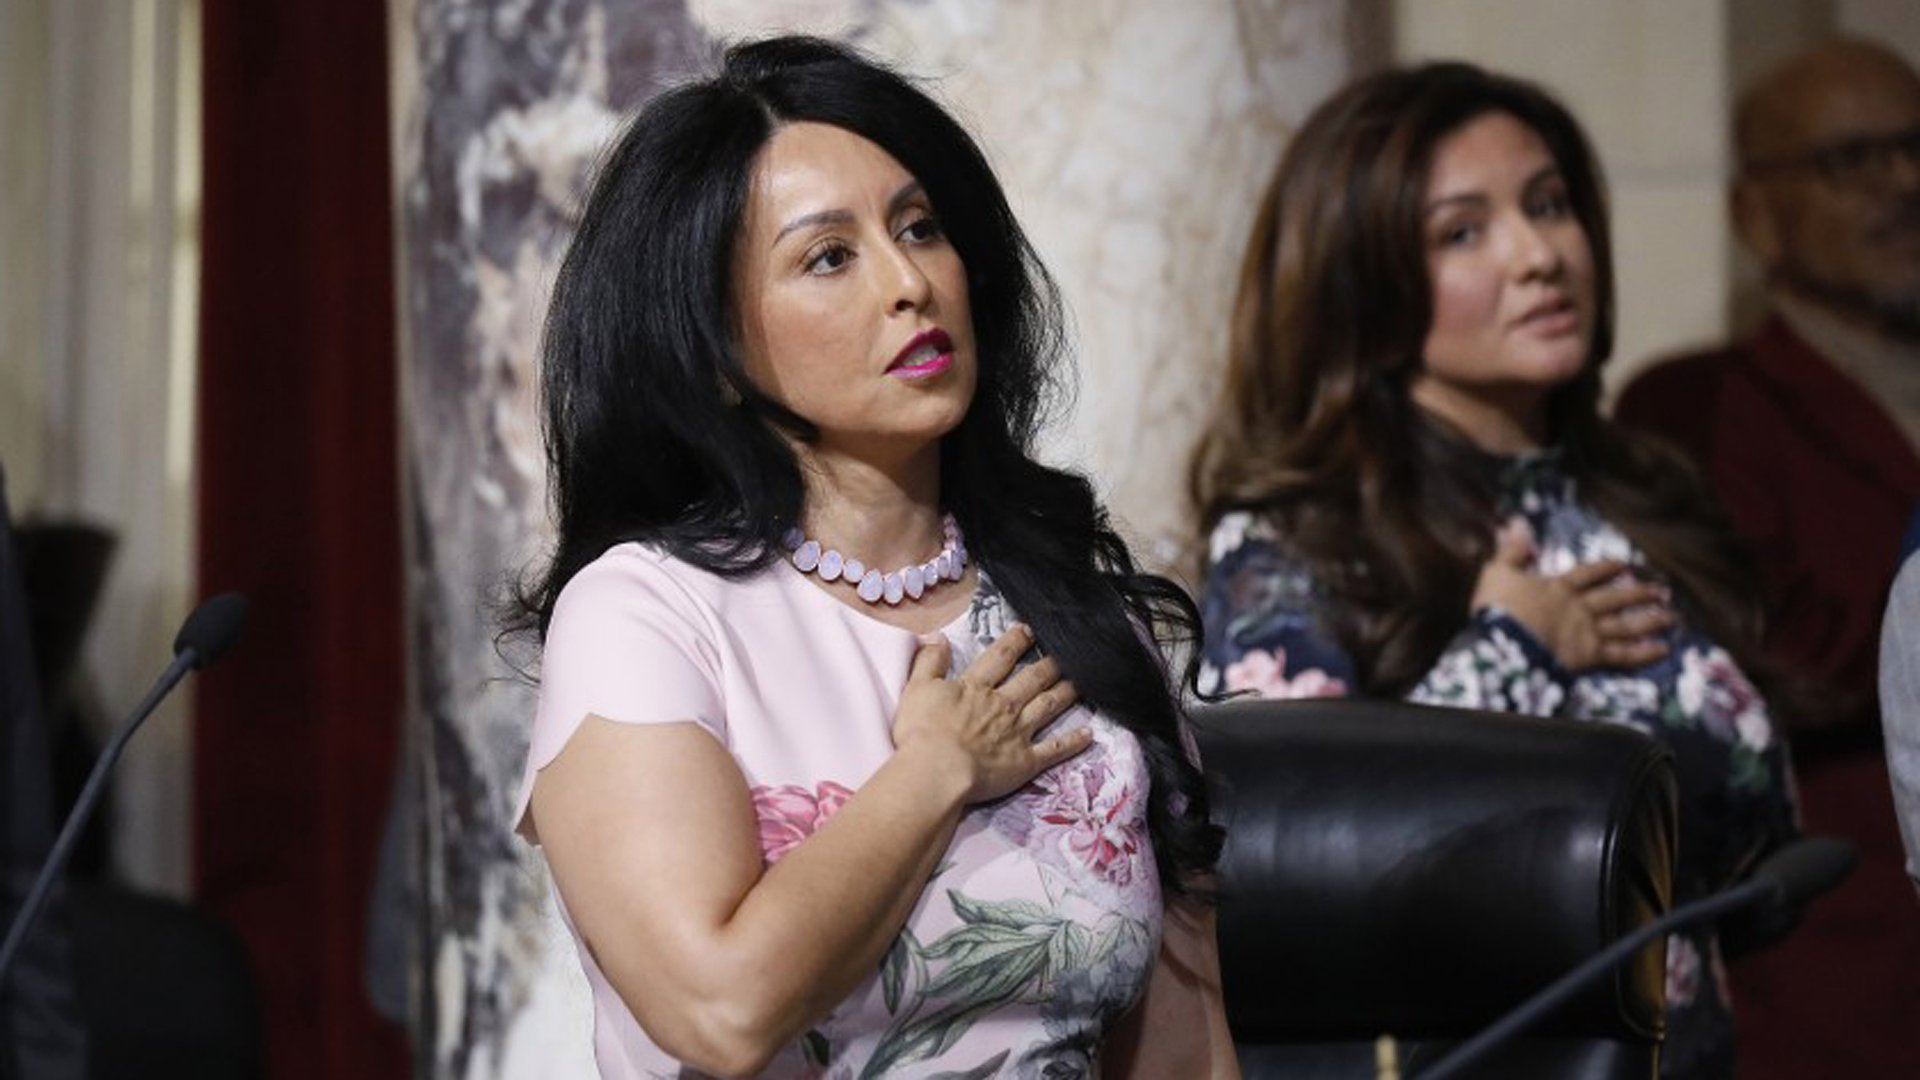 Los Angeles City Council President Nury Martinez, shown reciting the Pledge of Allegiance at a council meeting, backed the measure to ban private detention centers.(Credit: Al Seib / Los Angeles Times)